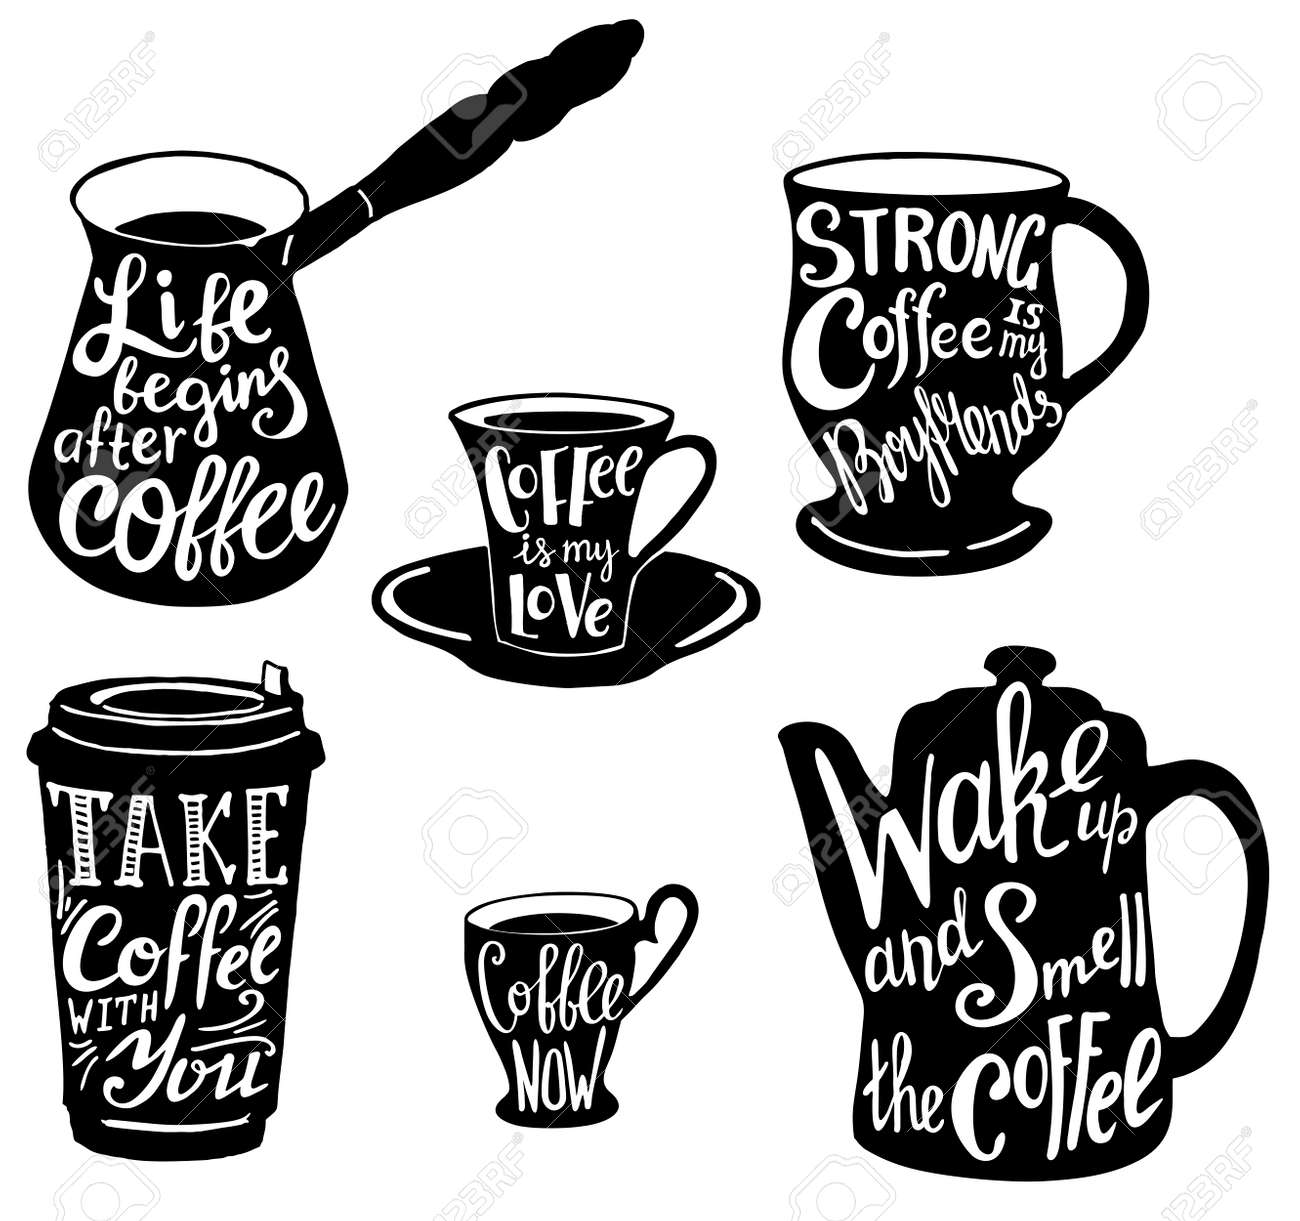 Vector Cute Coffee Quotes And Sayings Typography Set Royalty Free Cliparts Vectors And Stock Illustration Image 95970634